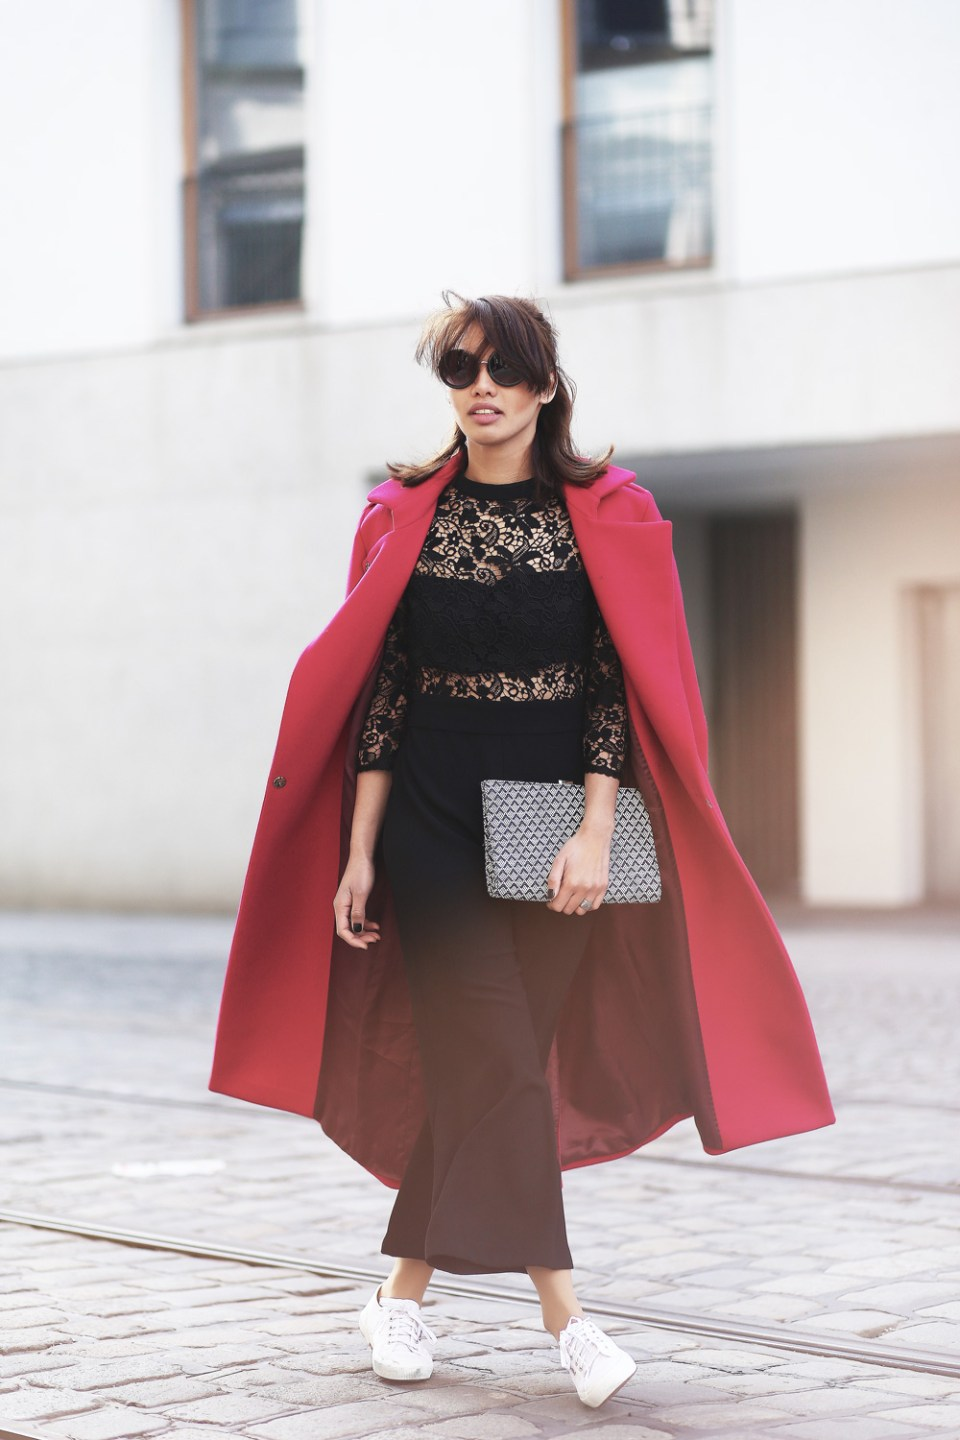 PINK-MANTEL-COAT-LACE-OVERALL-CULOTTES-SUPERGA-ZARA-THEFASHIONANARCHY-LOOK-STYLE-OUTFIT-SNEAKER-BLACK-SPITZE-FASHIONBLOG-MODEBLOG-STYLEBLOG-MUNICH-DIANABUENGER-5